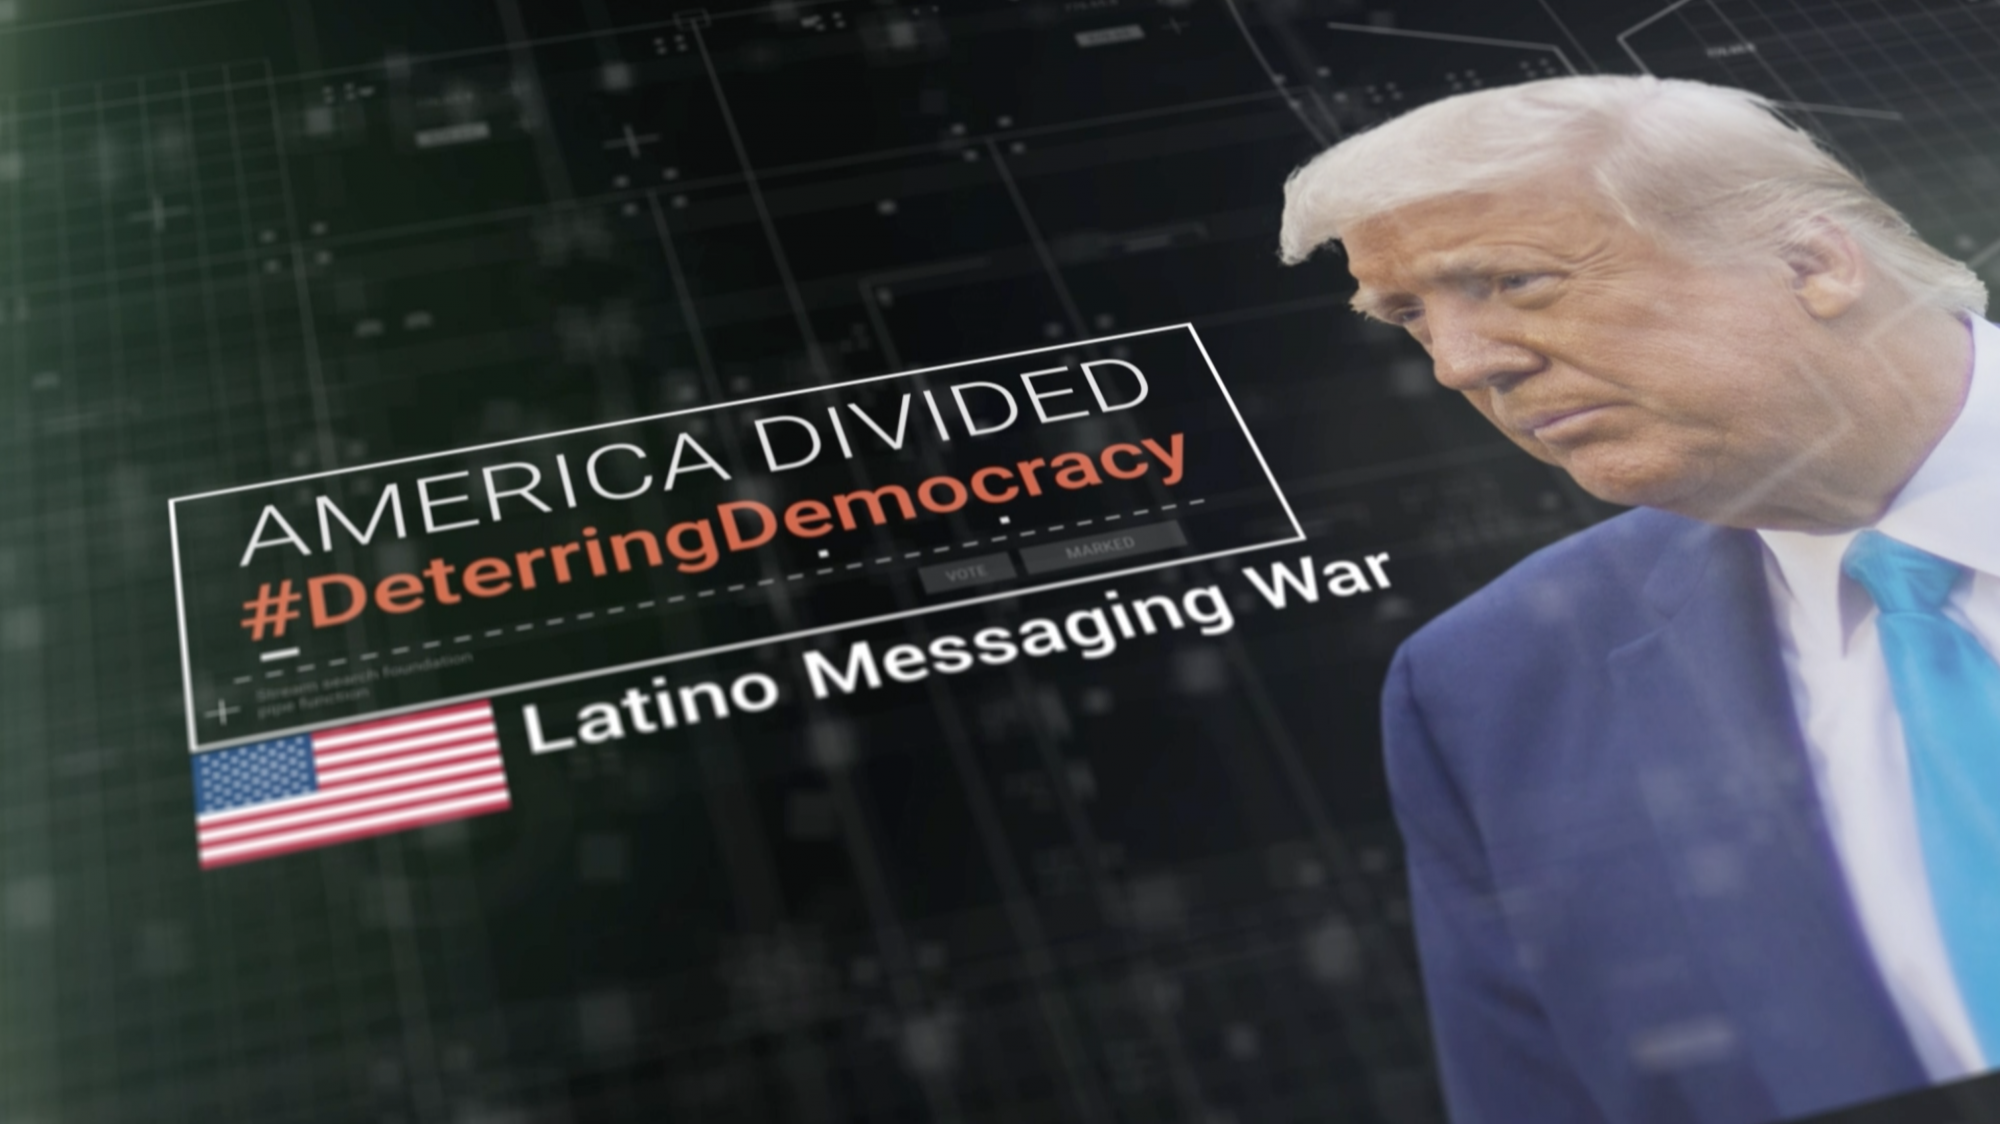 How the Trump campaign is targeting Hispanic voters - channel 4